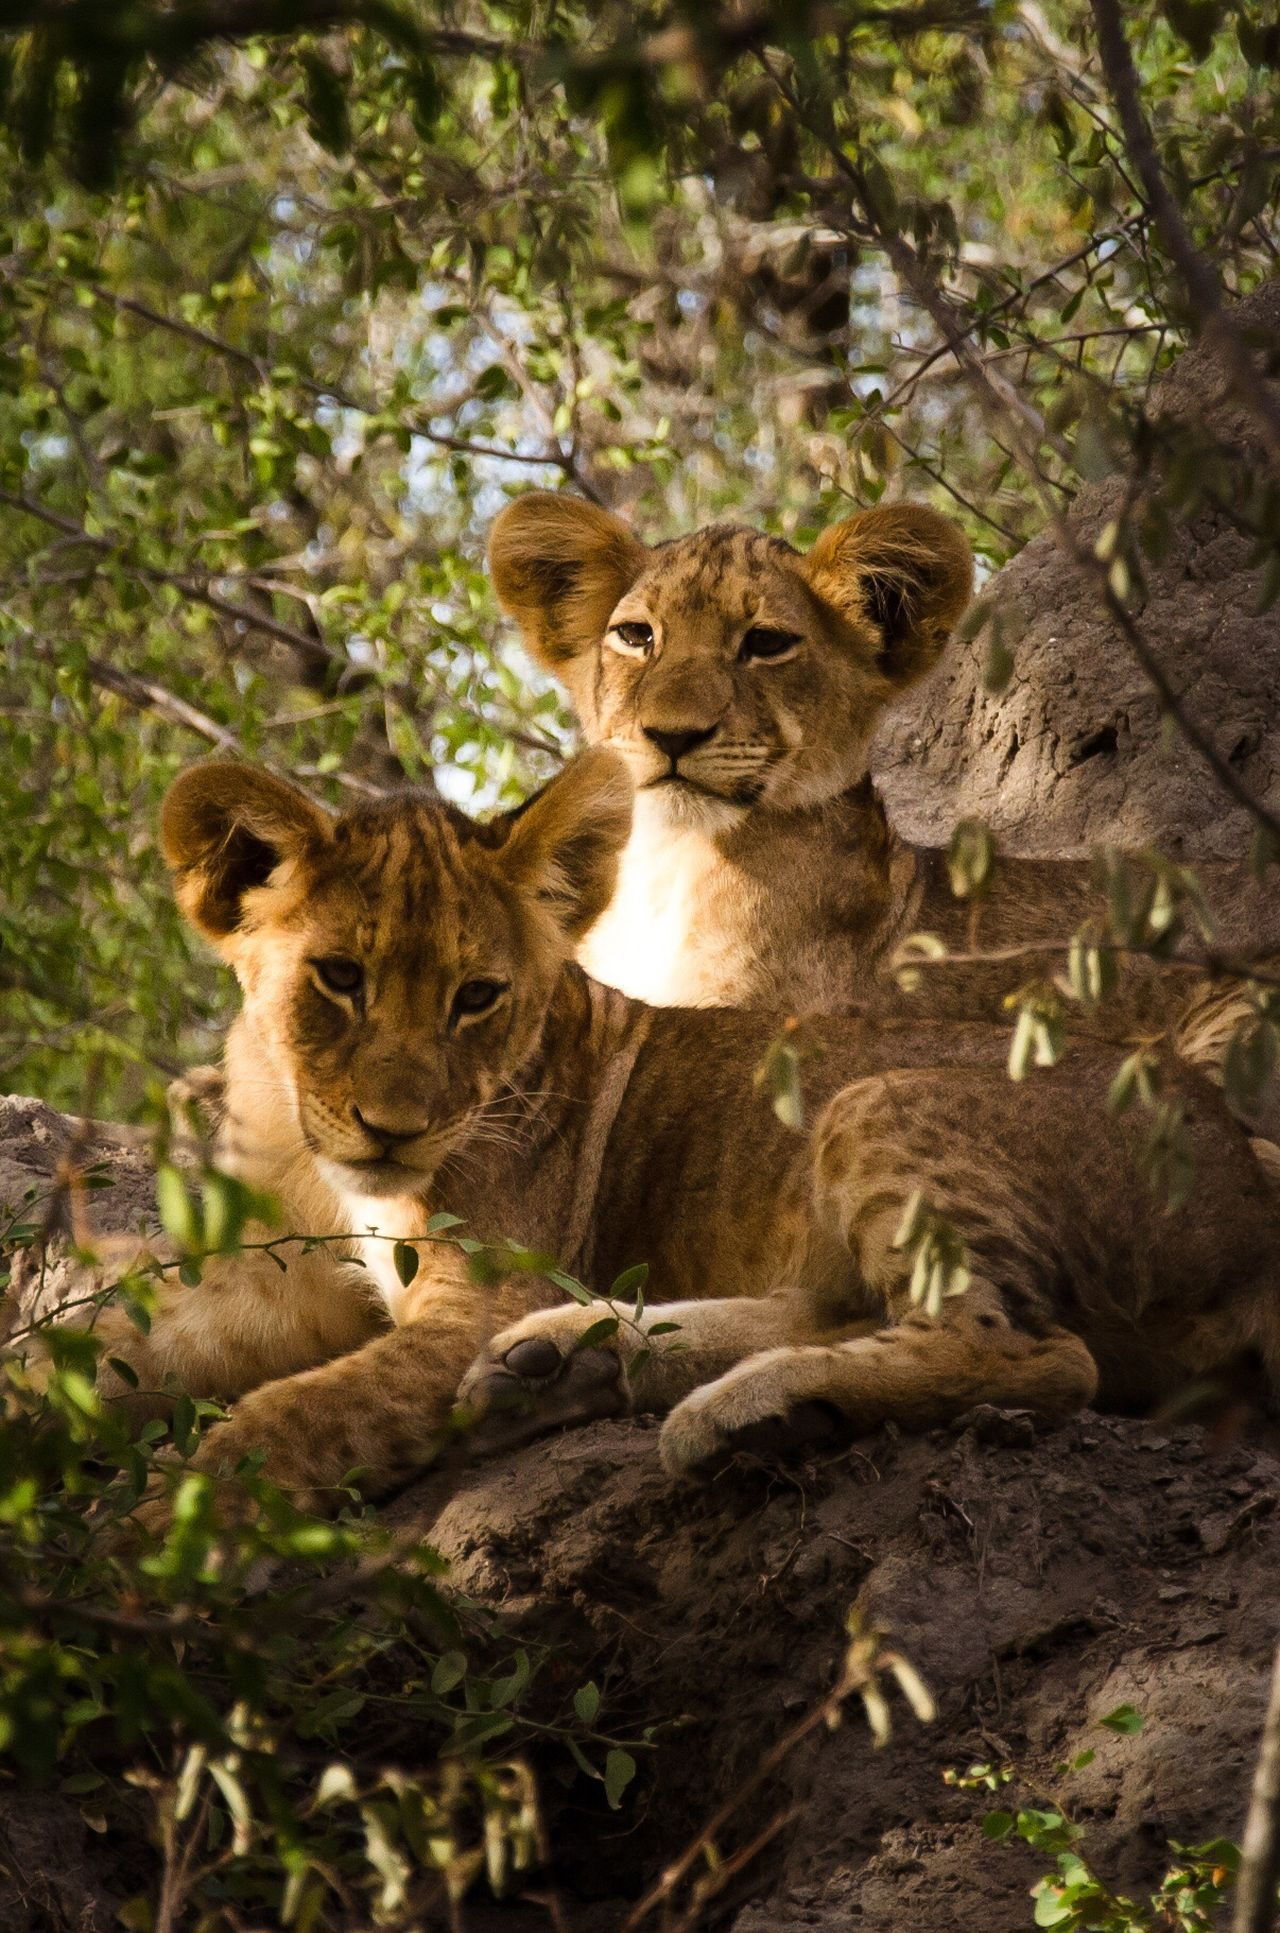 south africa Animals In The Wild Lion Baby